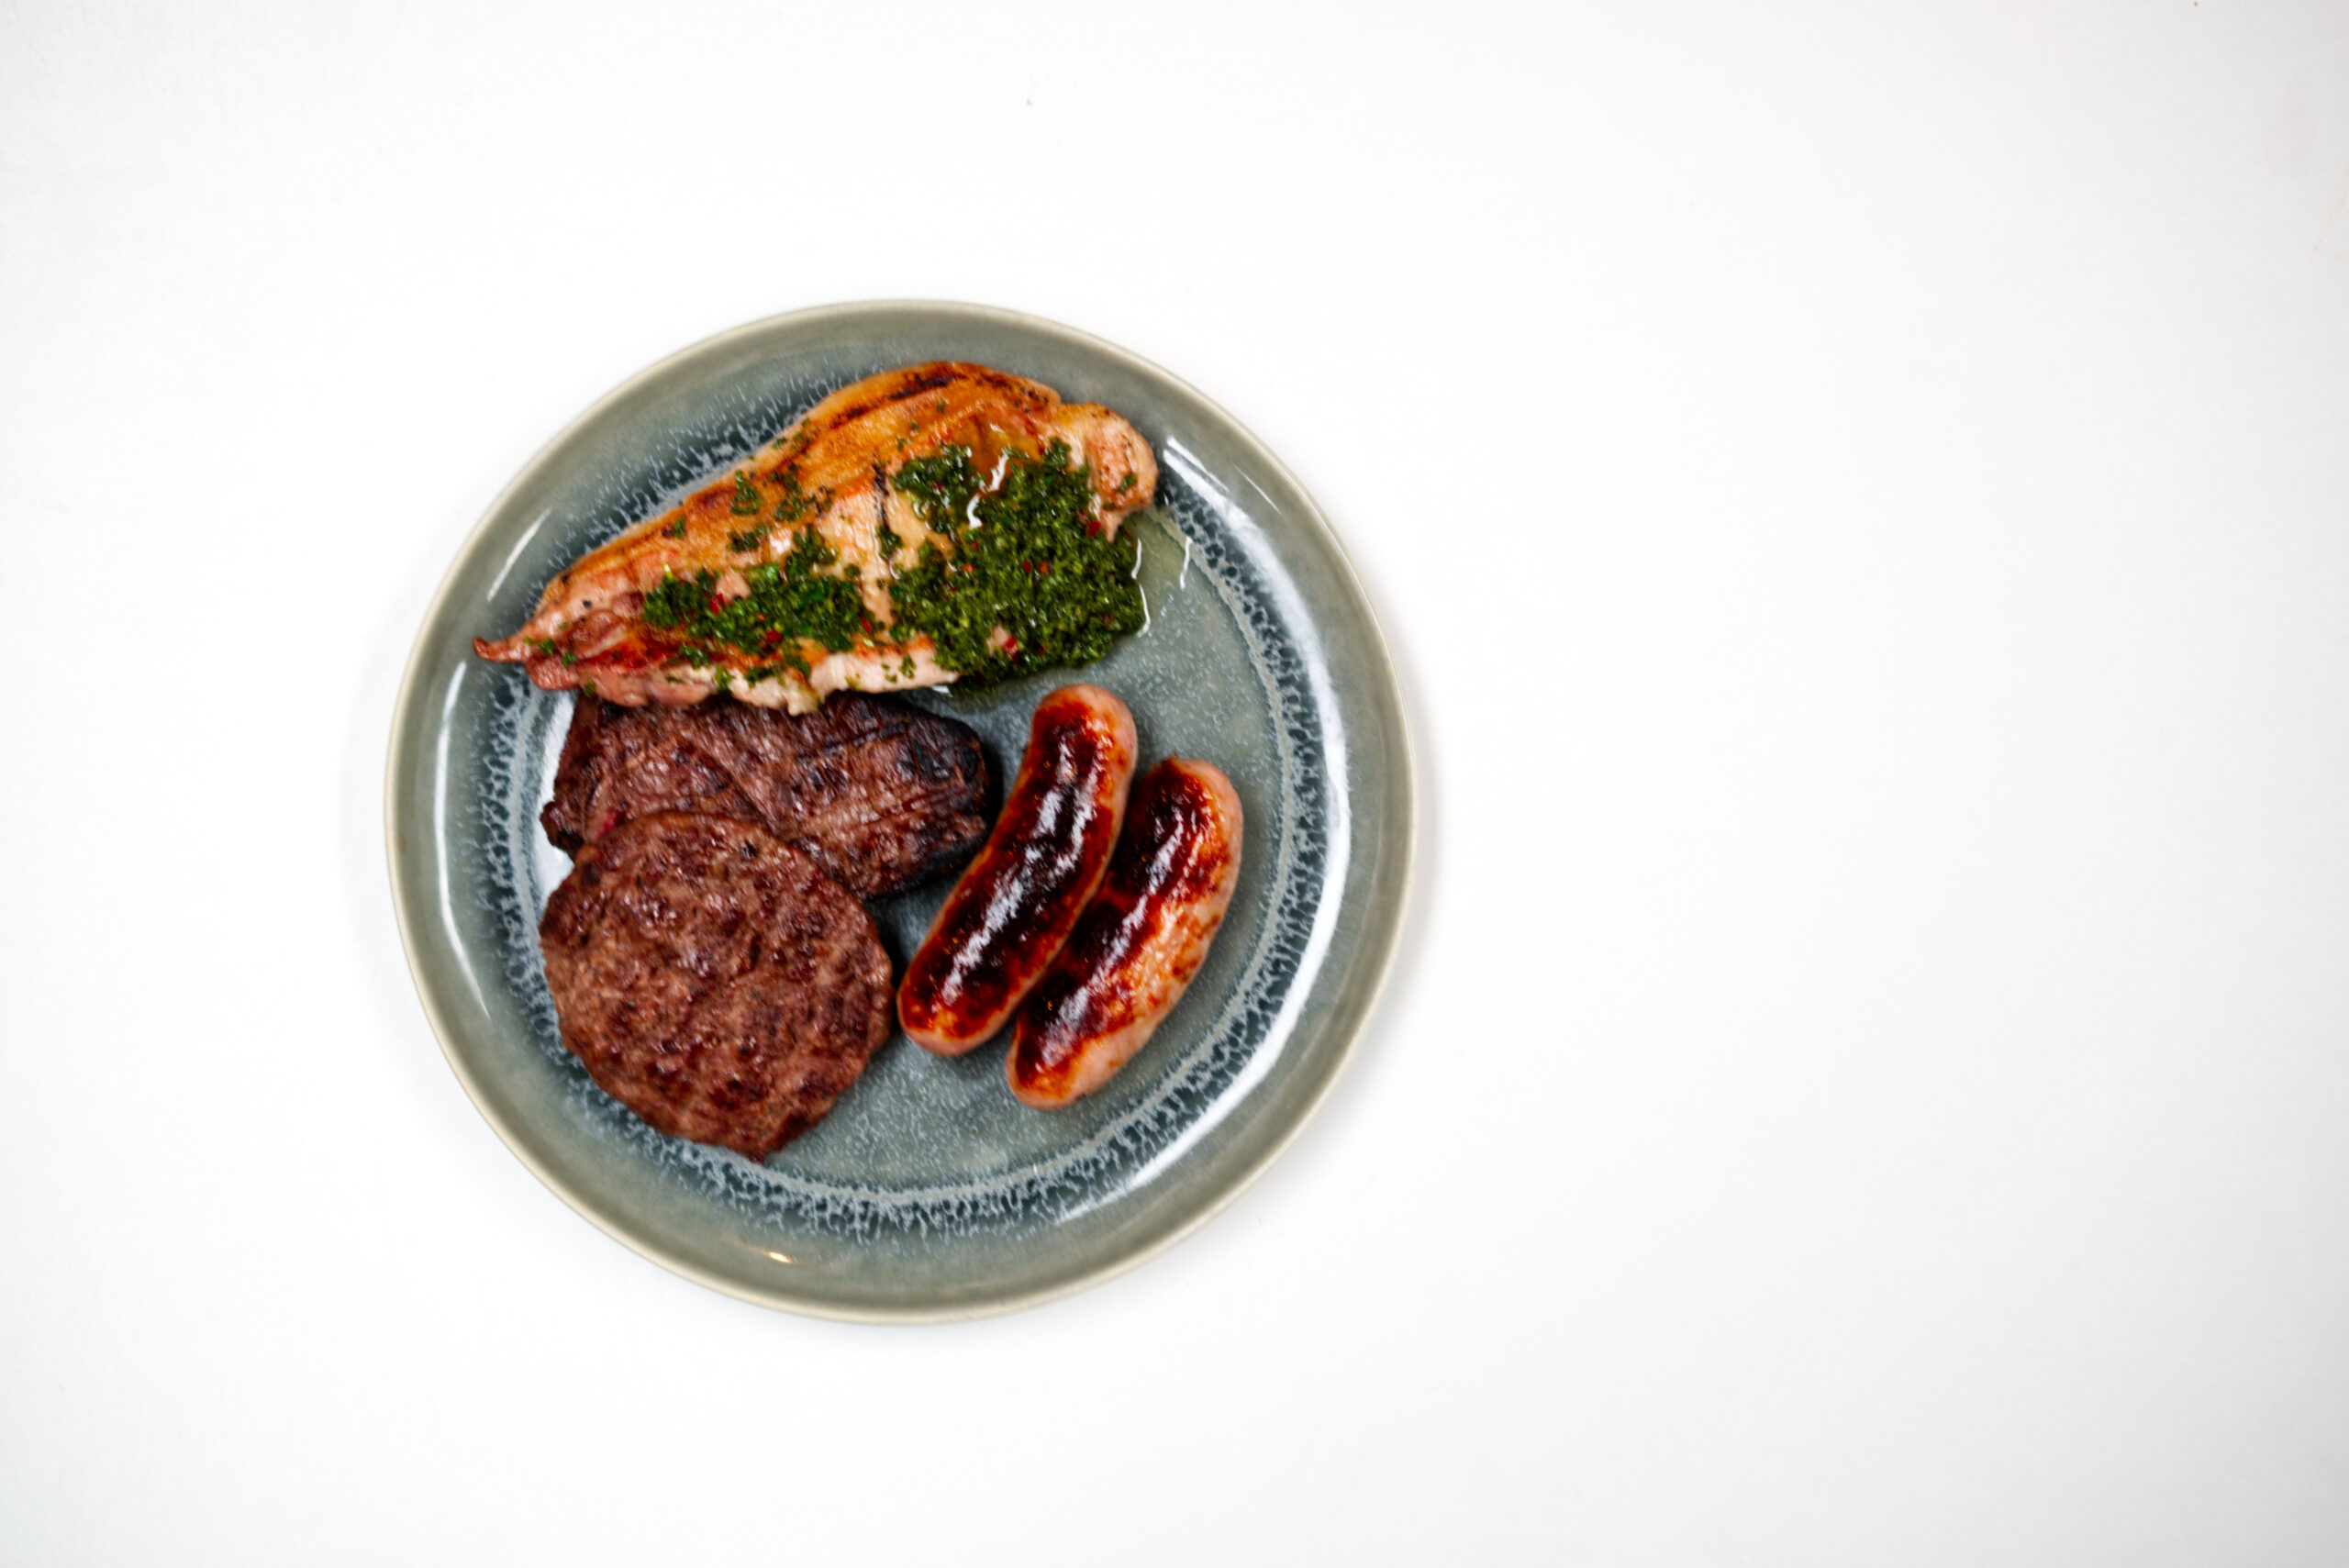 KBK Cooked meat plate